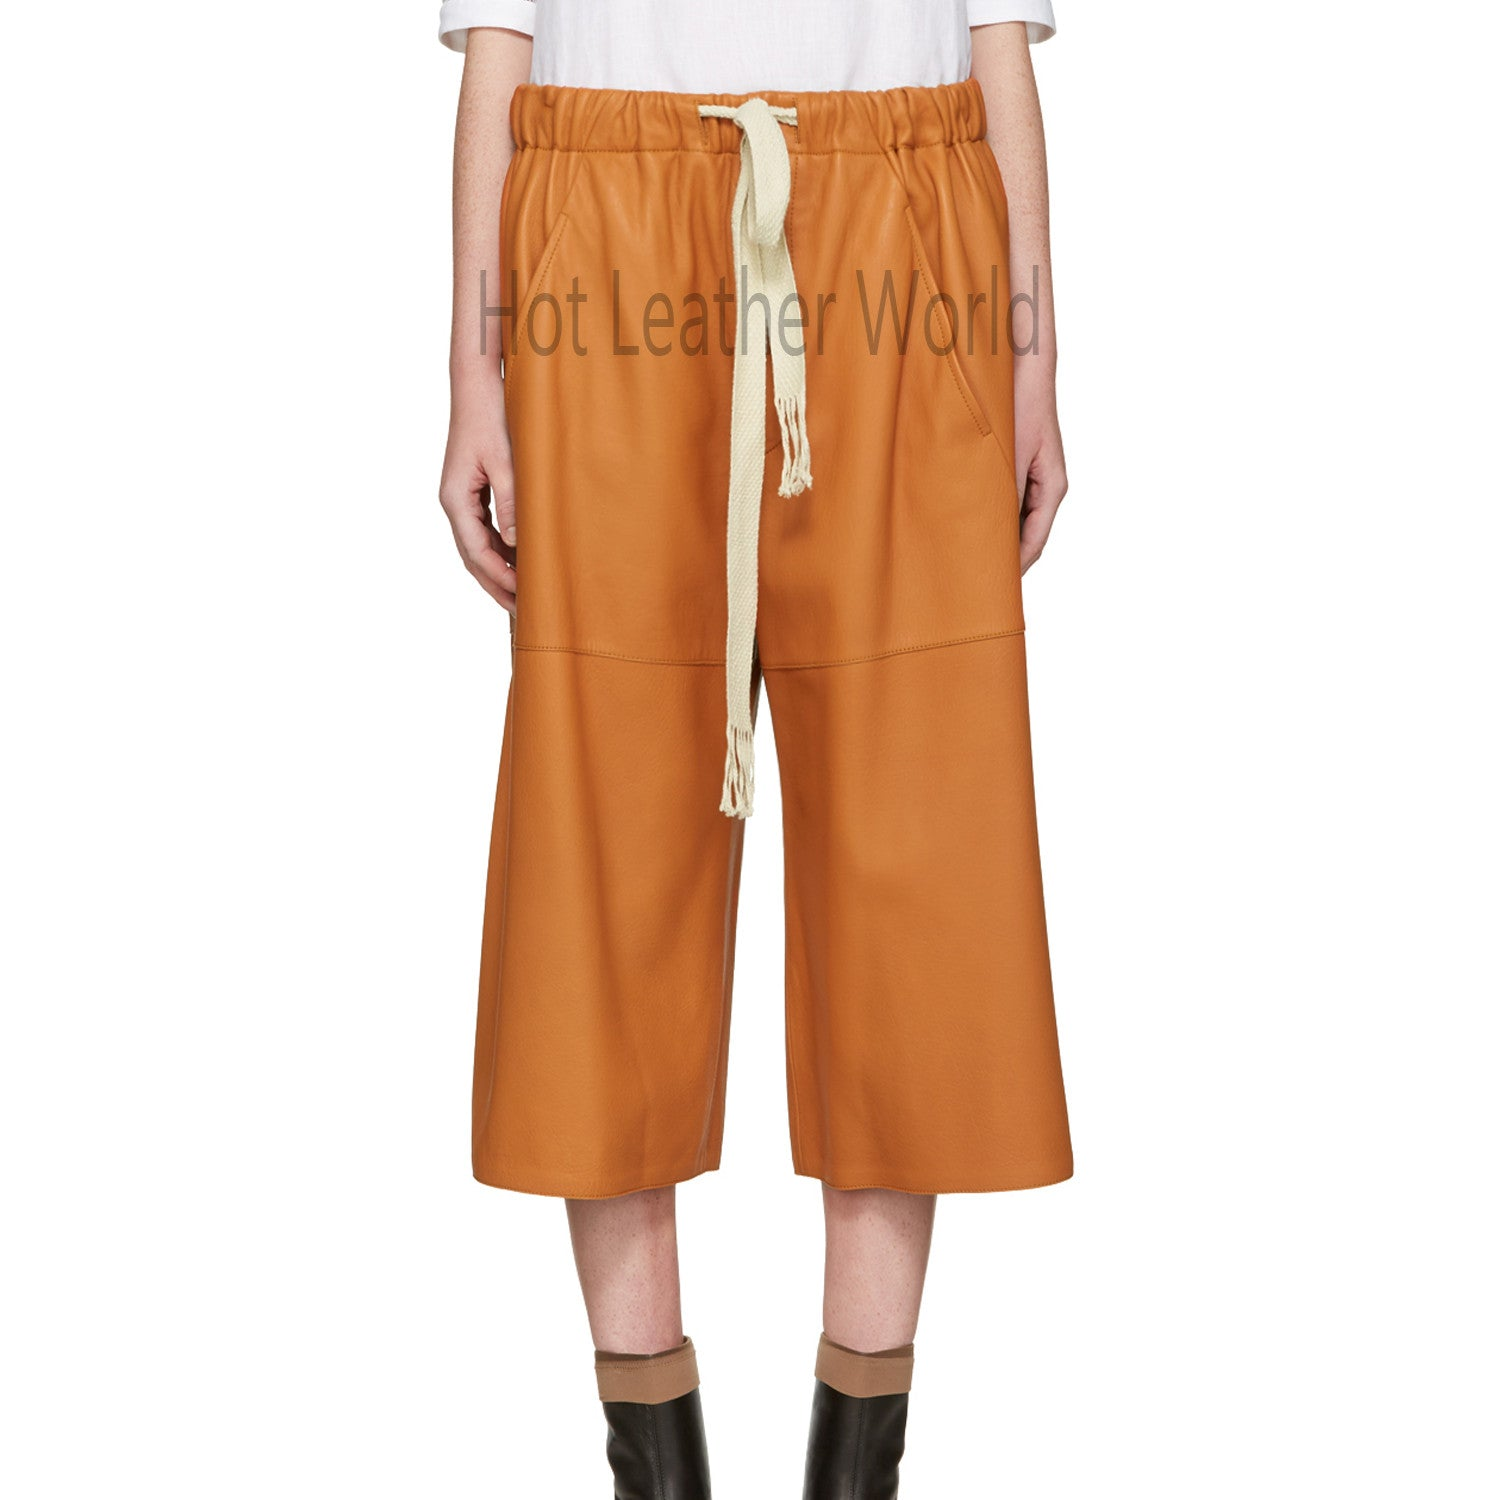 Orange Leather Shorts For Women -  HOTLEATHERWORLD